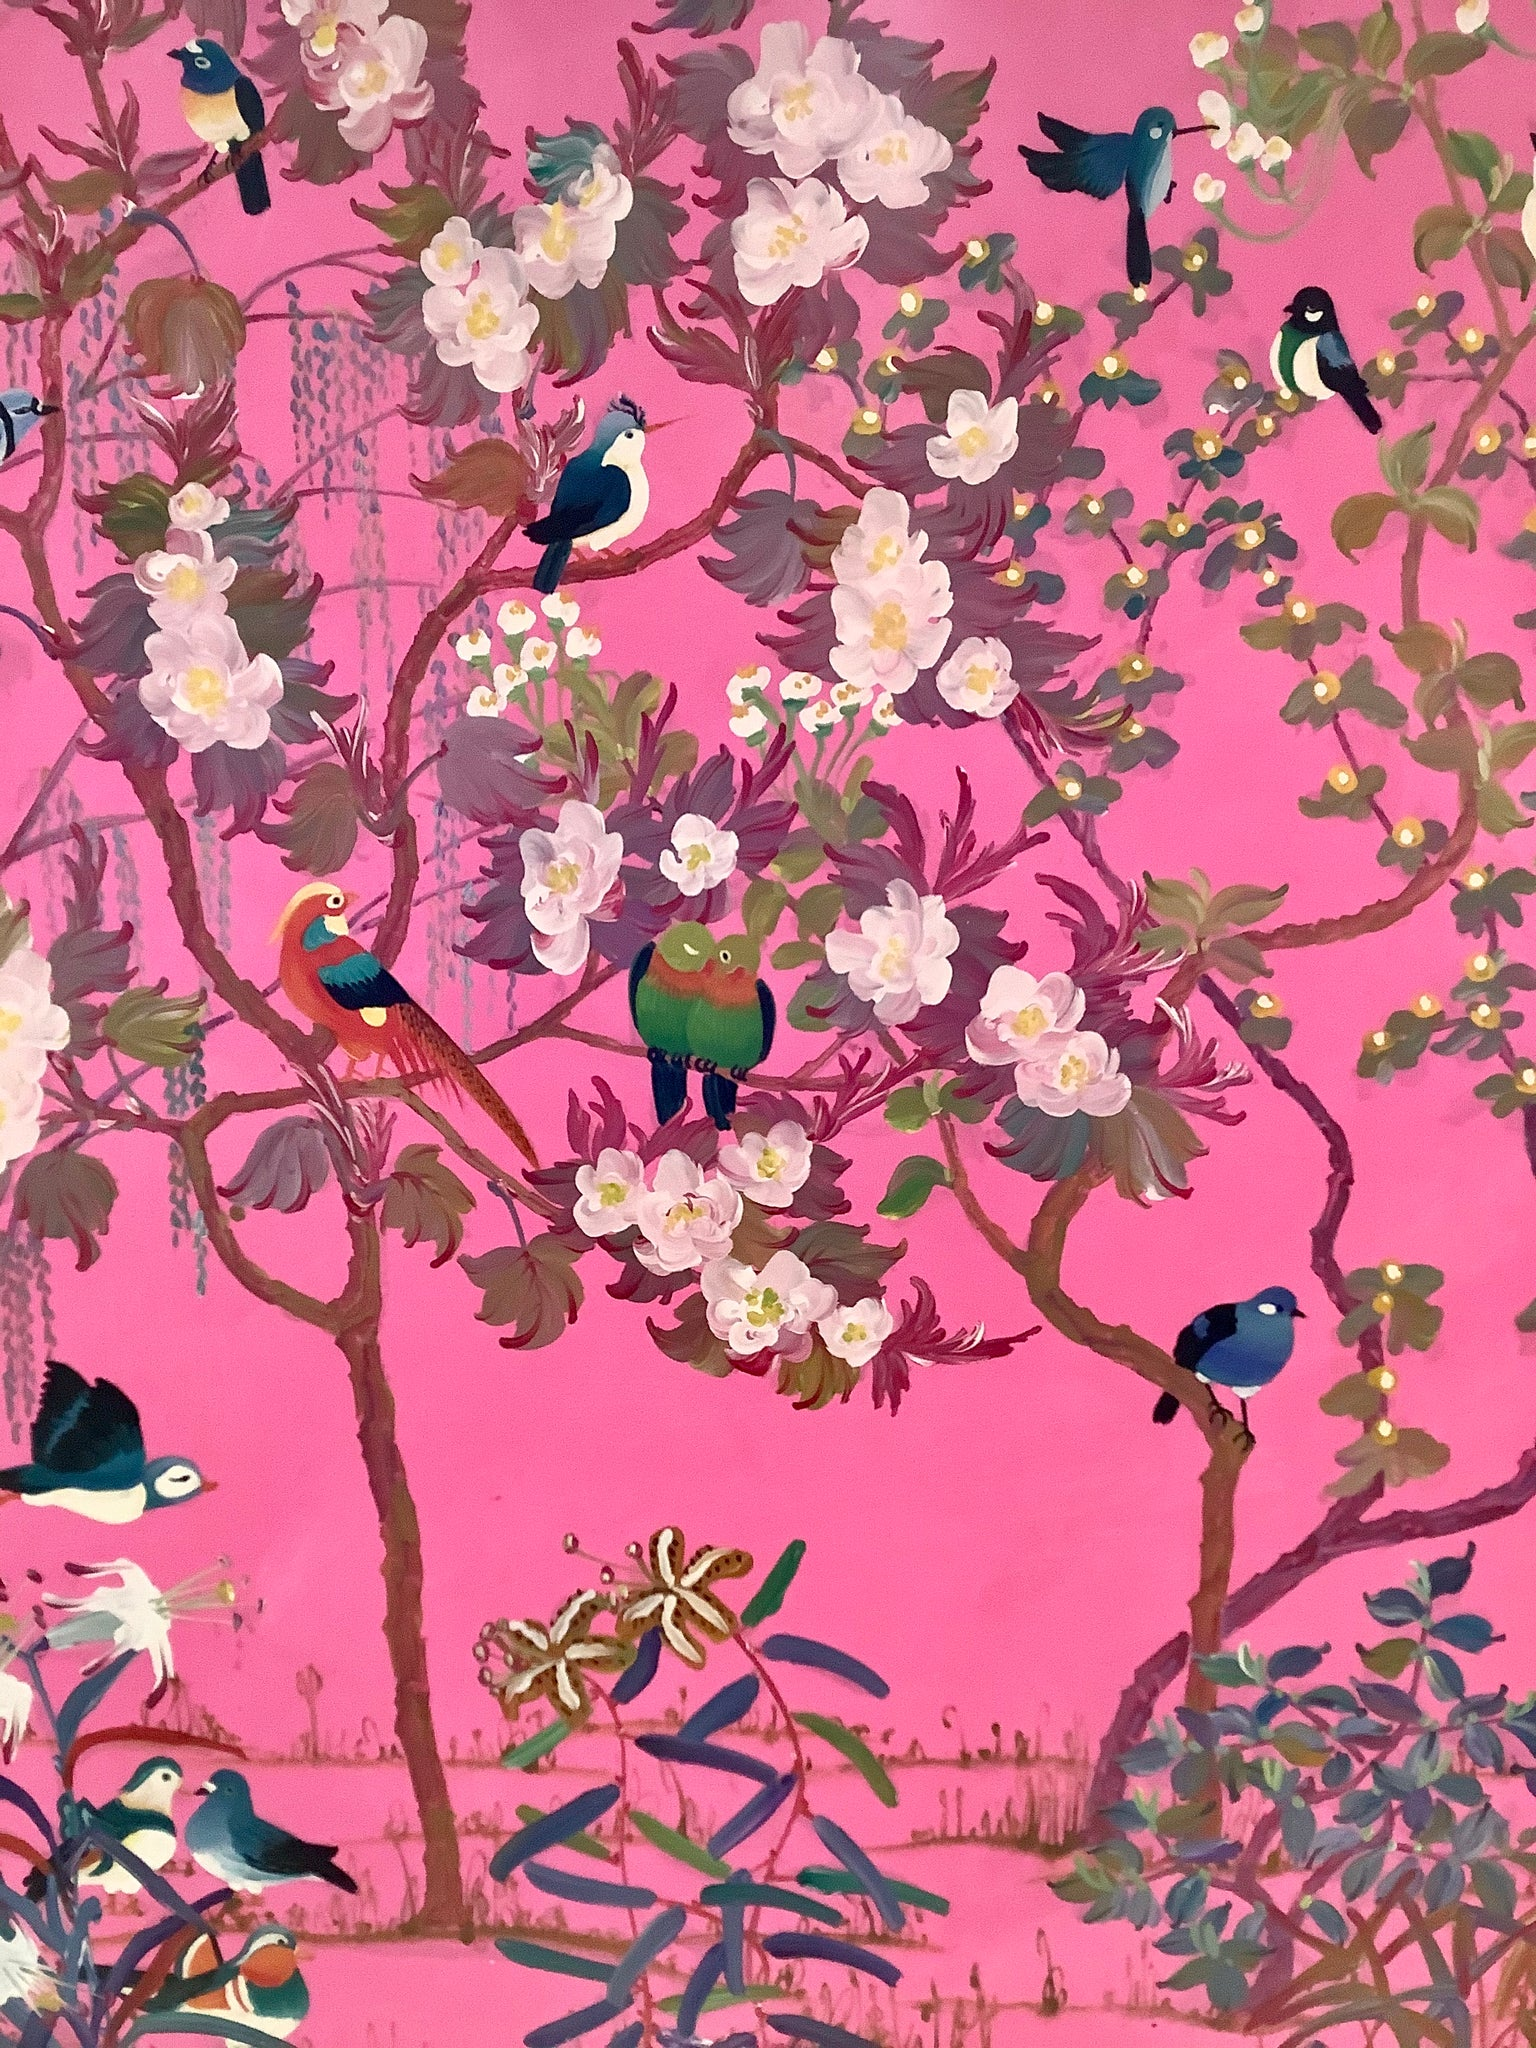 Birds in Pink by Yanli He